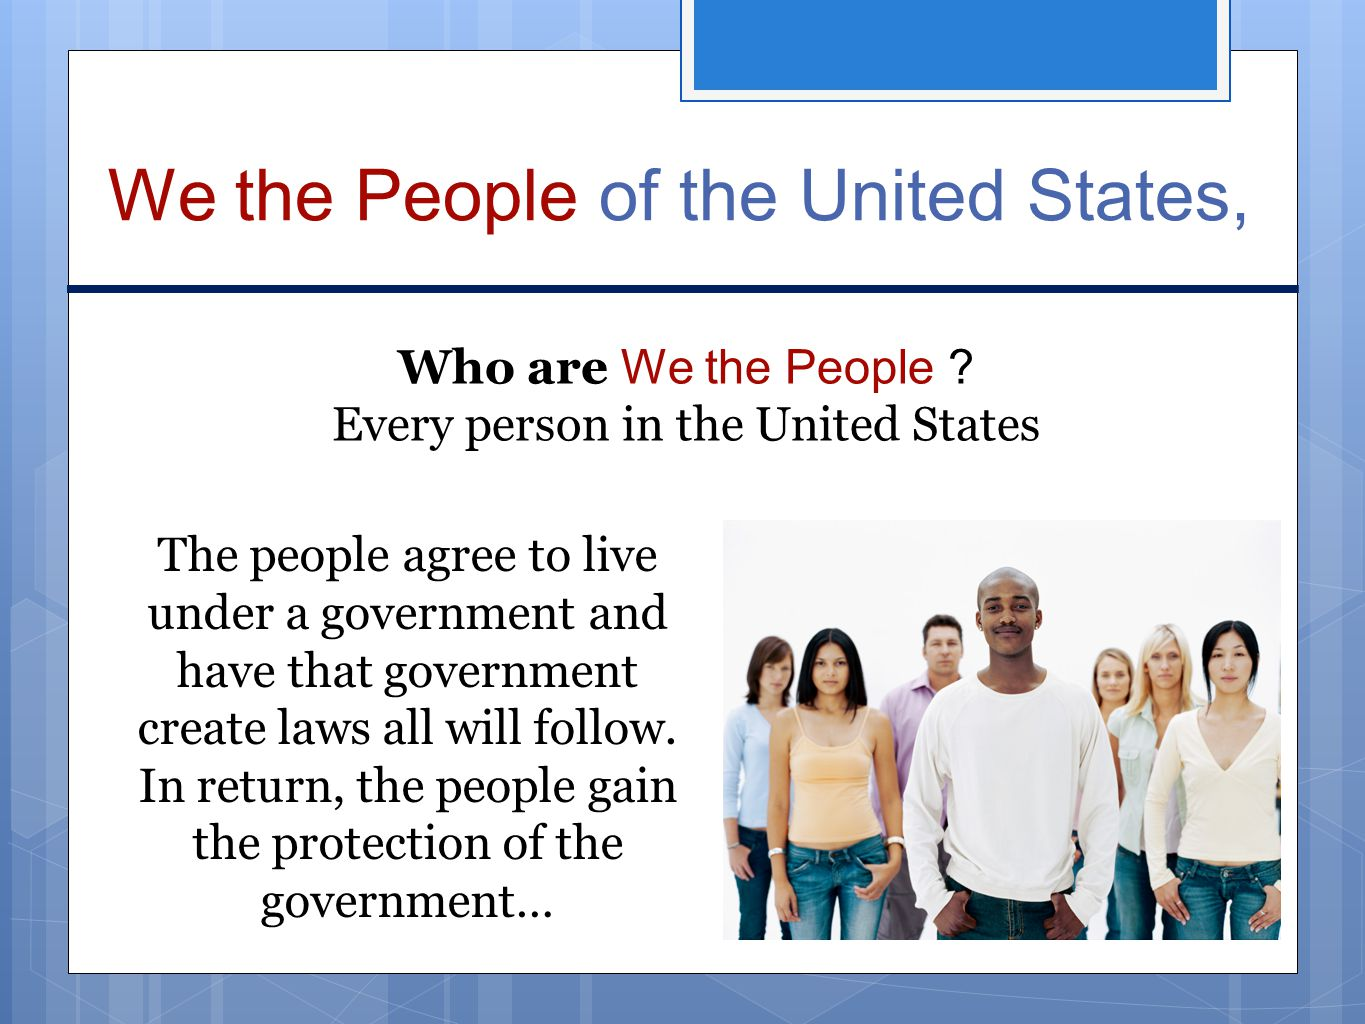 the rights of the people who live in the united states Congress of the united states begun and held at the city of new-york, on   thereof or abridging the freedom of speech, or of the press, or the right of the  people  in jeopardy of life or limb nor shall be compelled in any criminal case to  be a.